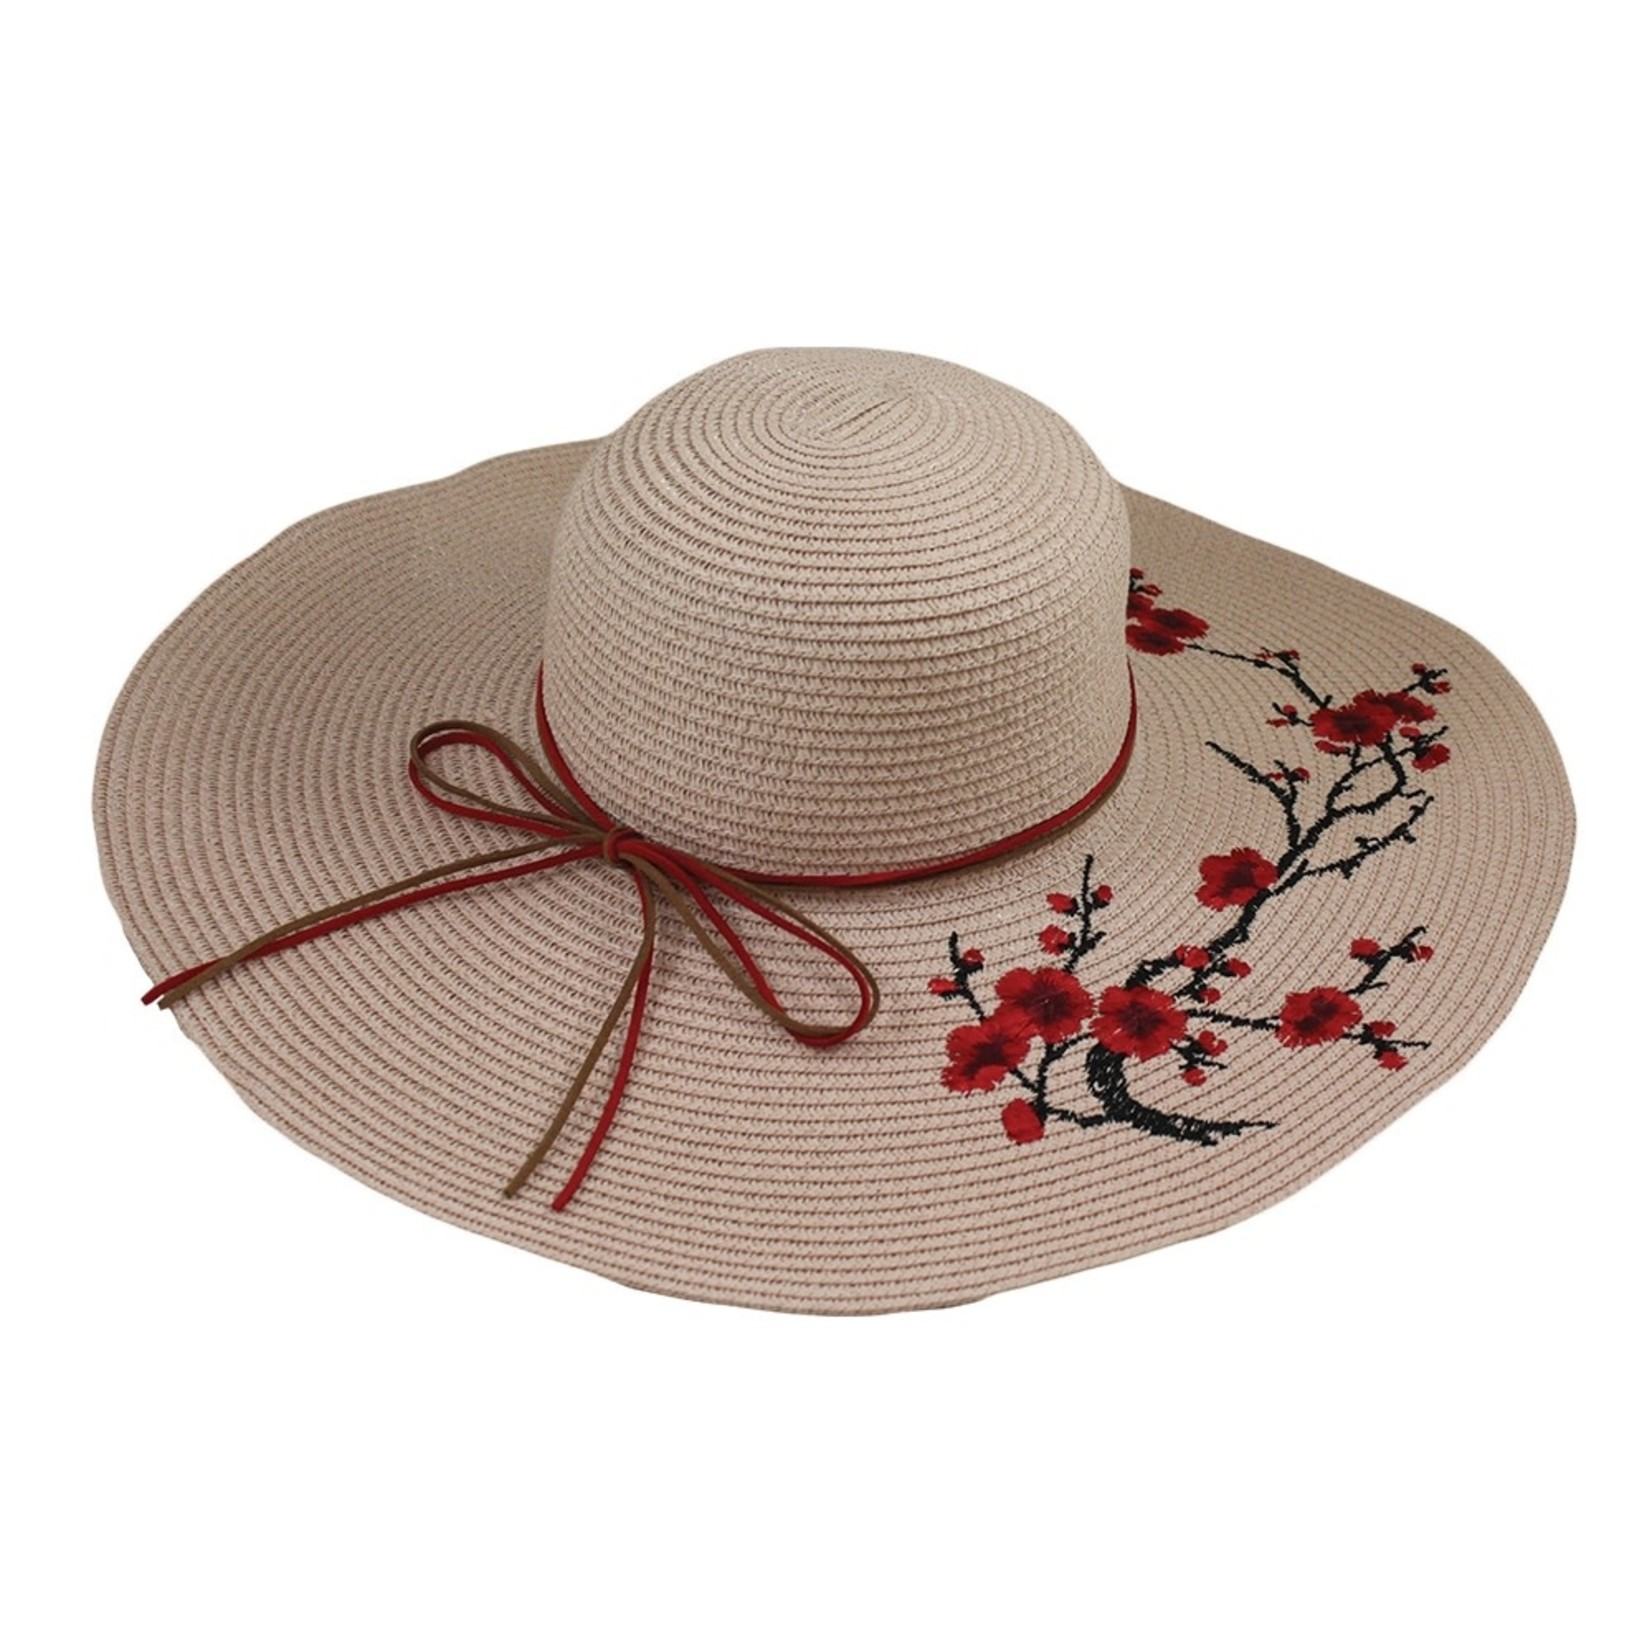 Jeanne Simmons Paper Braid Hat w/ Embroidered Red Blossom